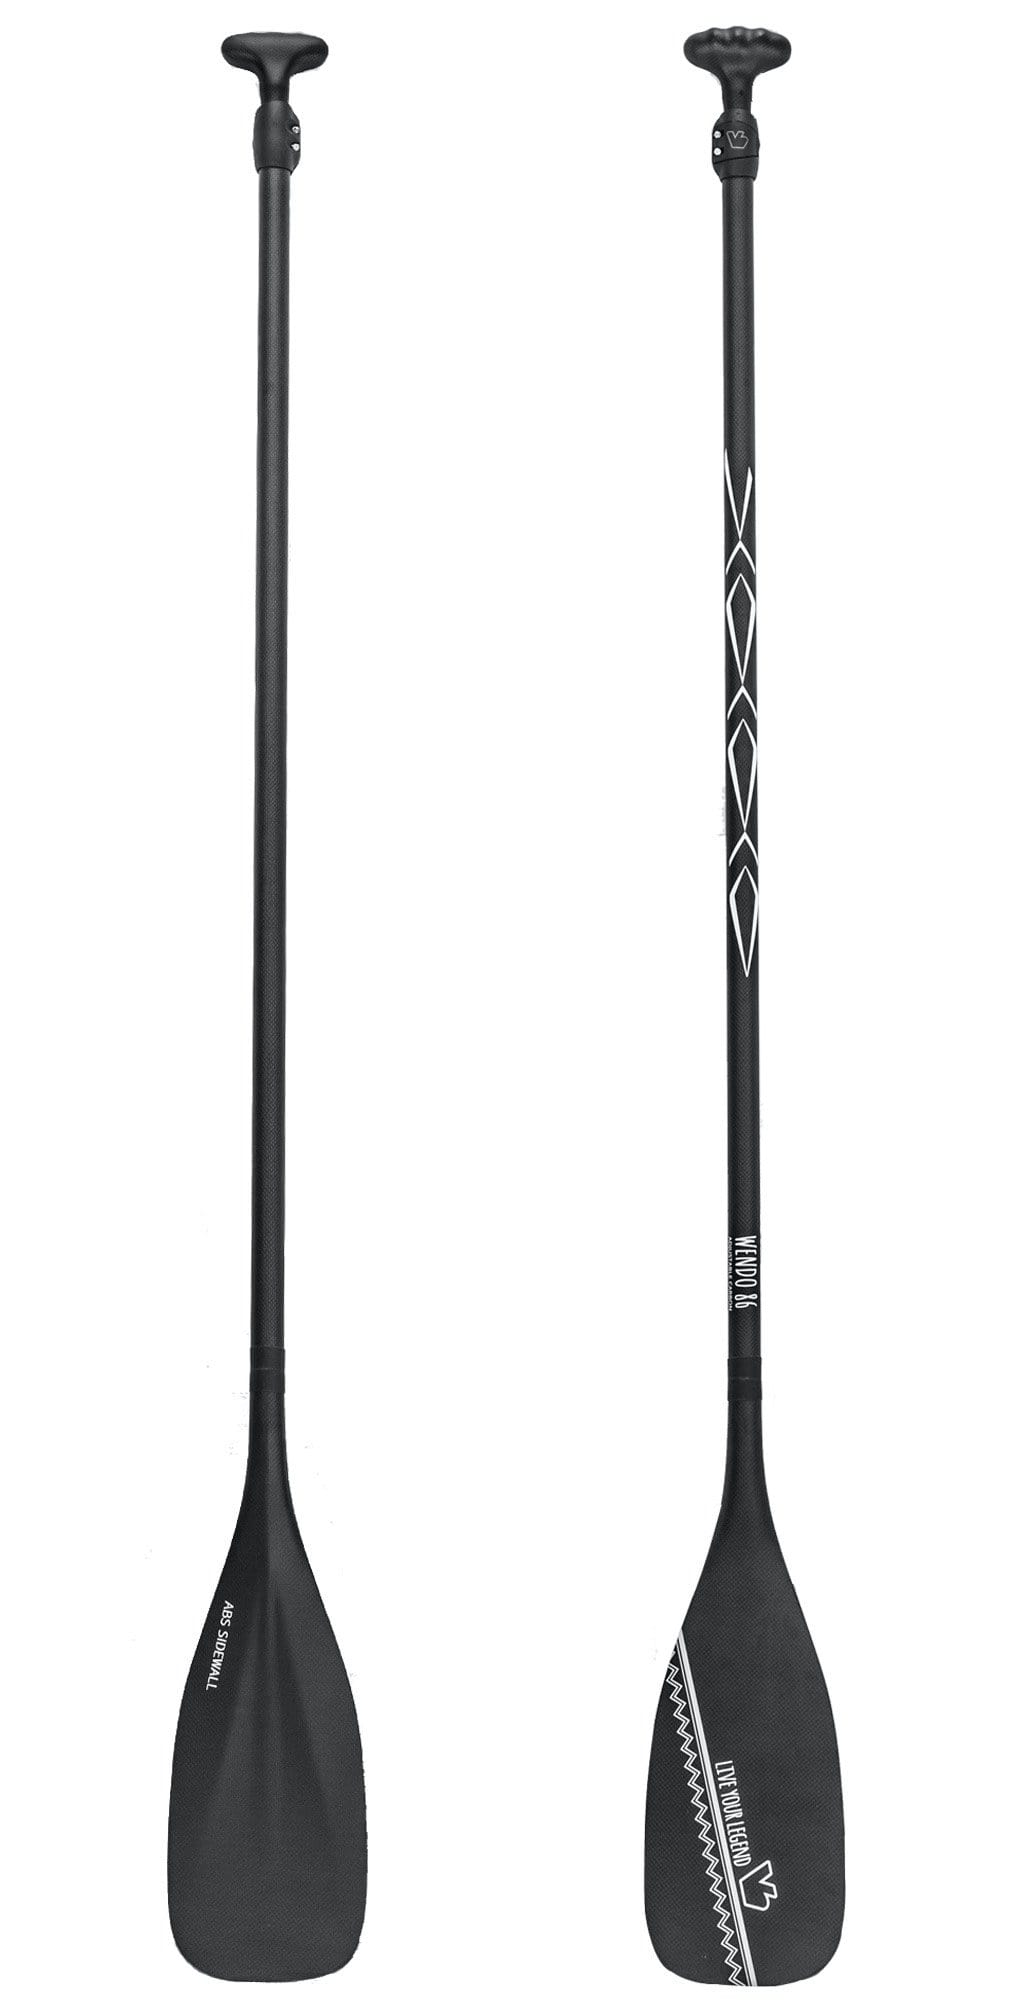 Vanhunks Carbon Adjustable Paddle